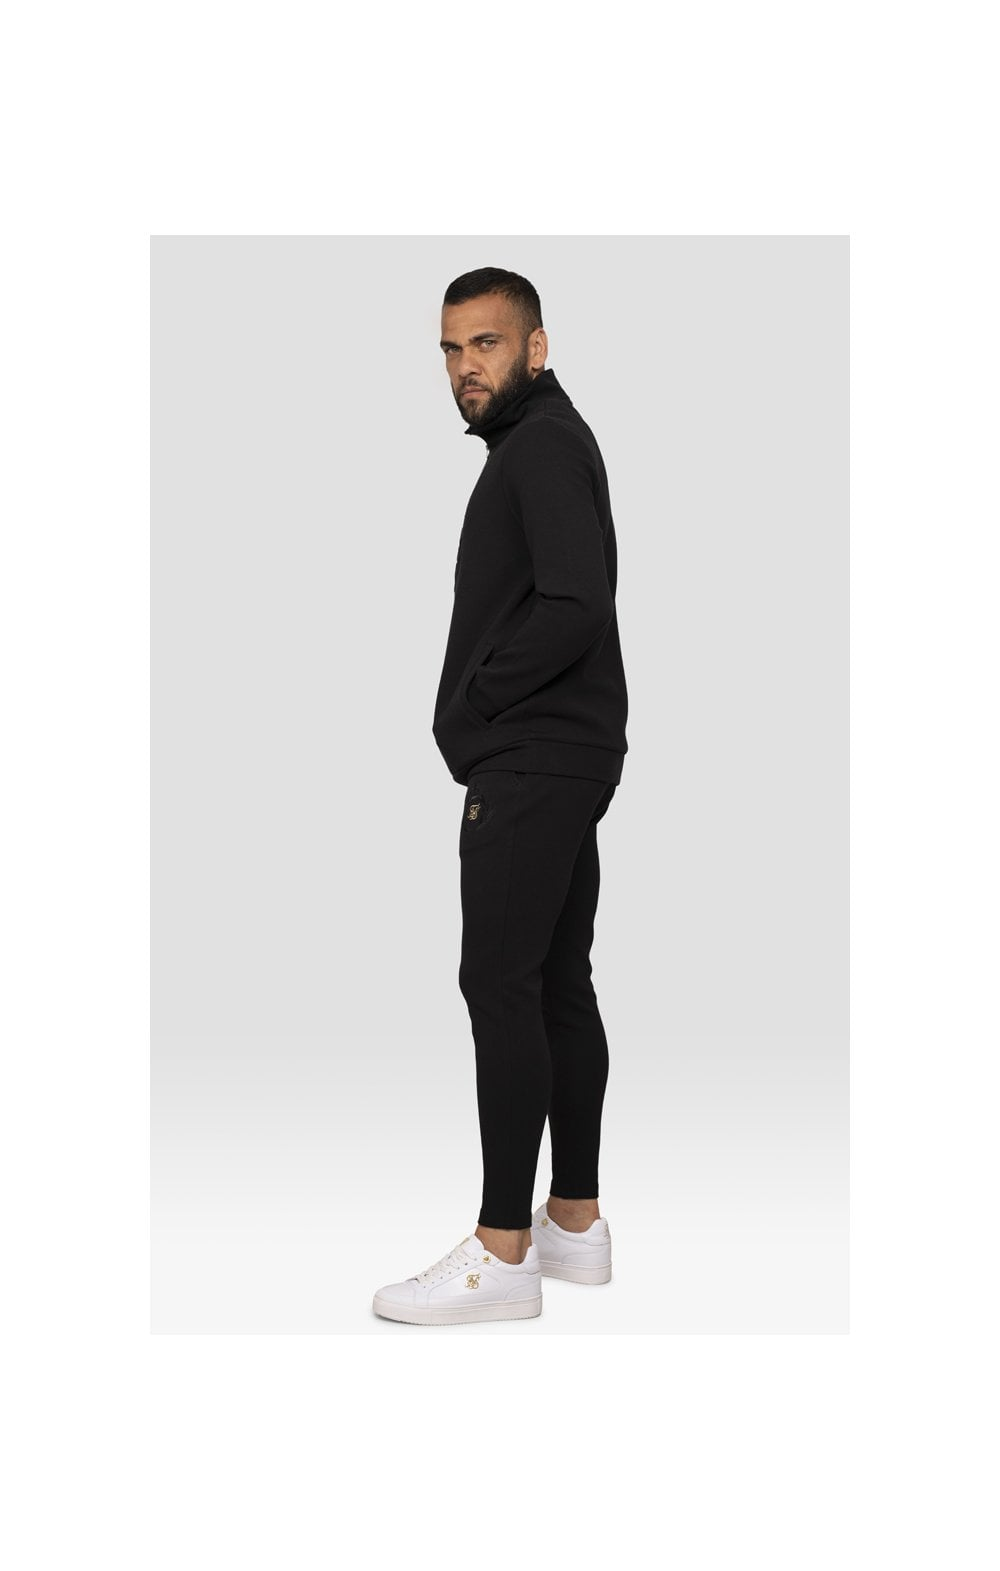 Load image into Gallery viewer, SikSilk x Dani Alves Quarter Zip Prestige Embossed Overhead Track Top – Black (6)